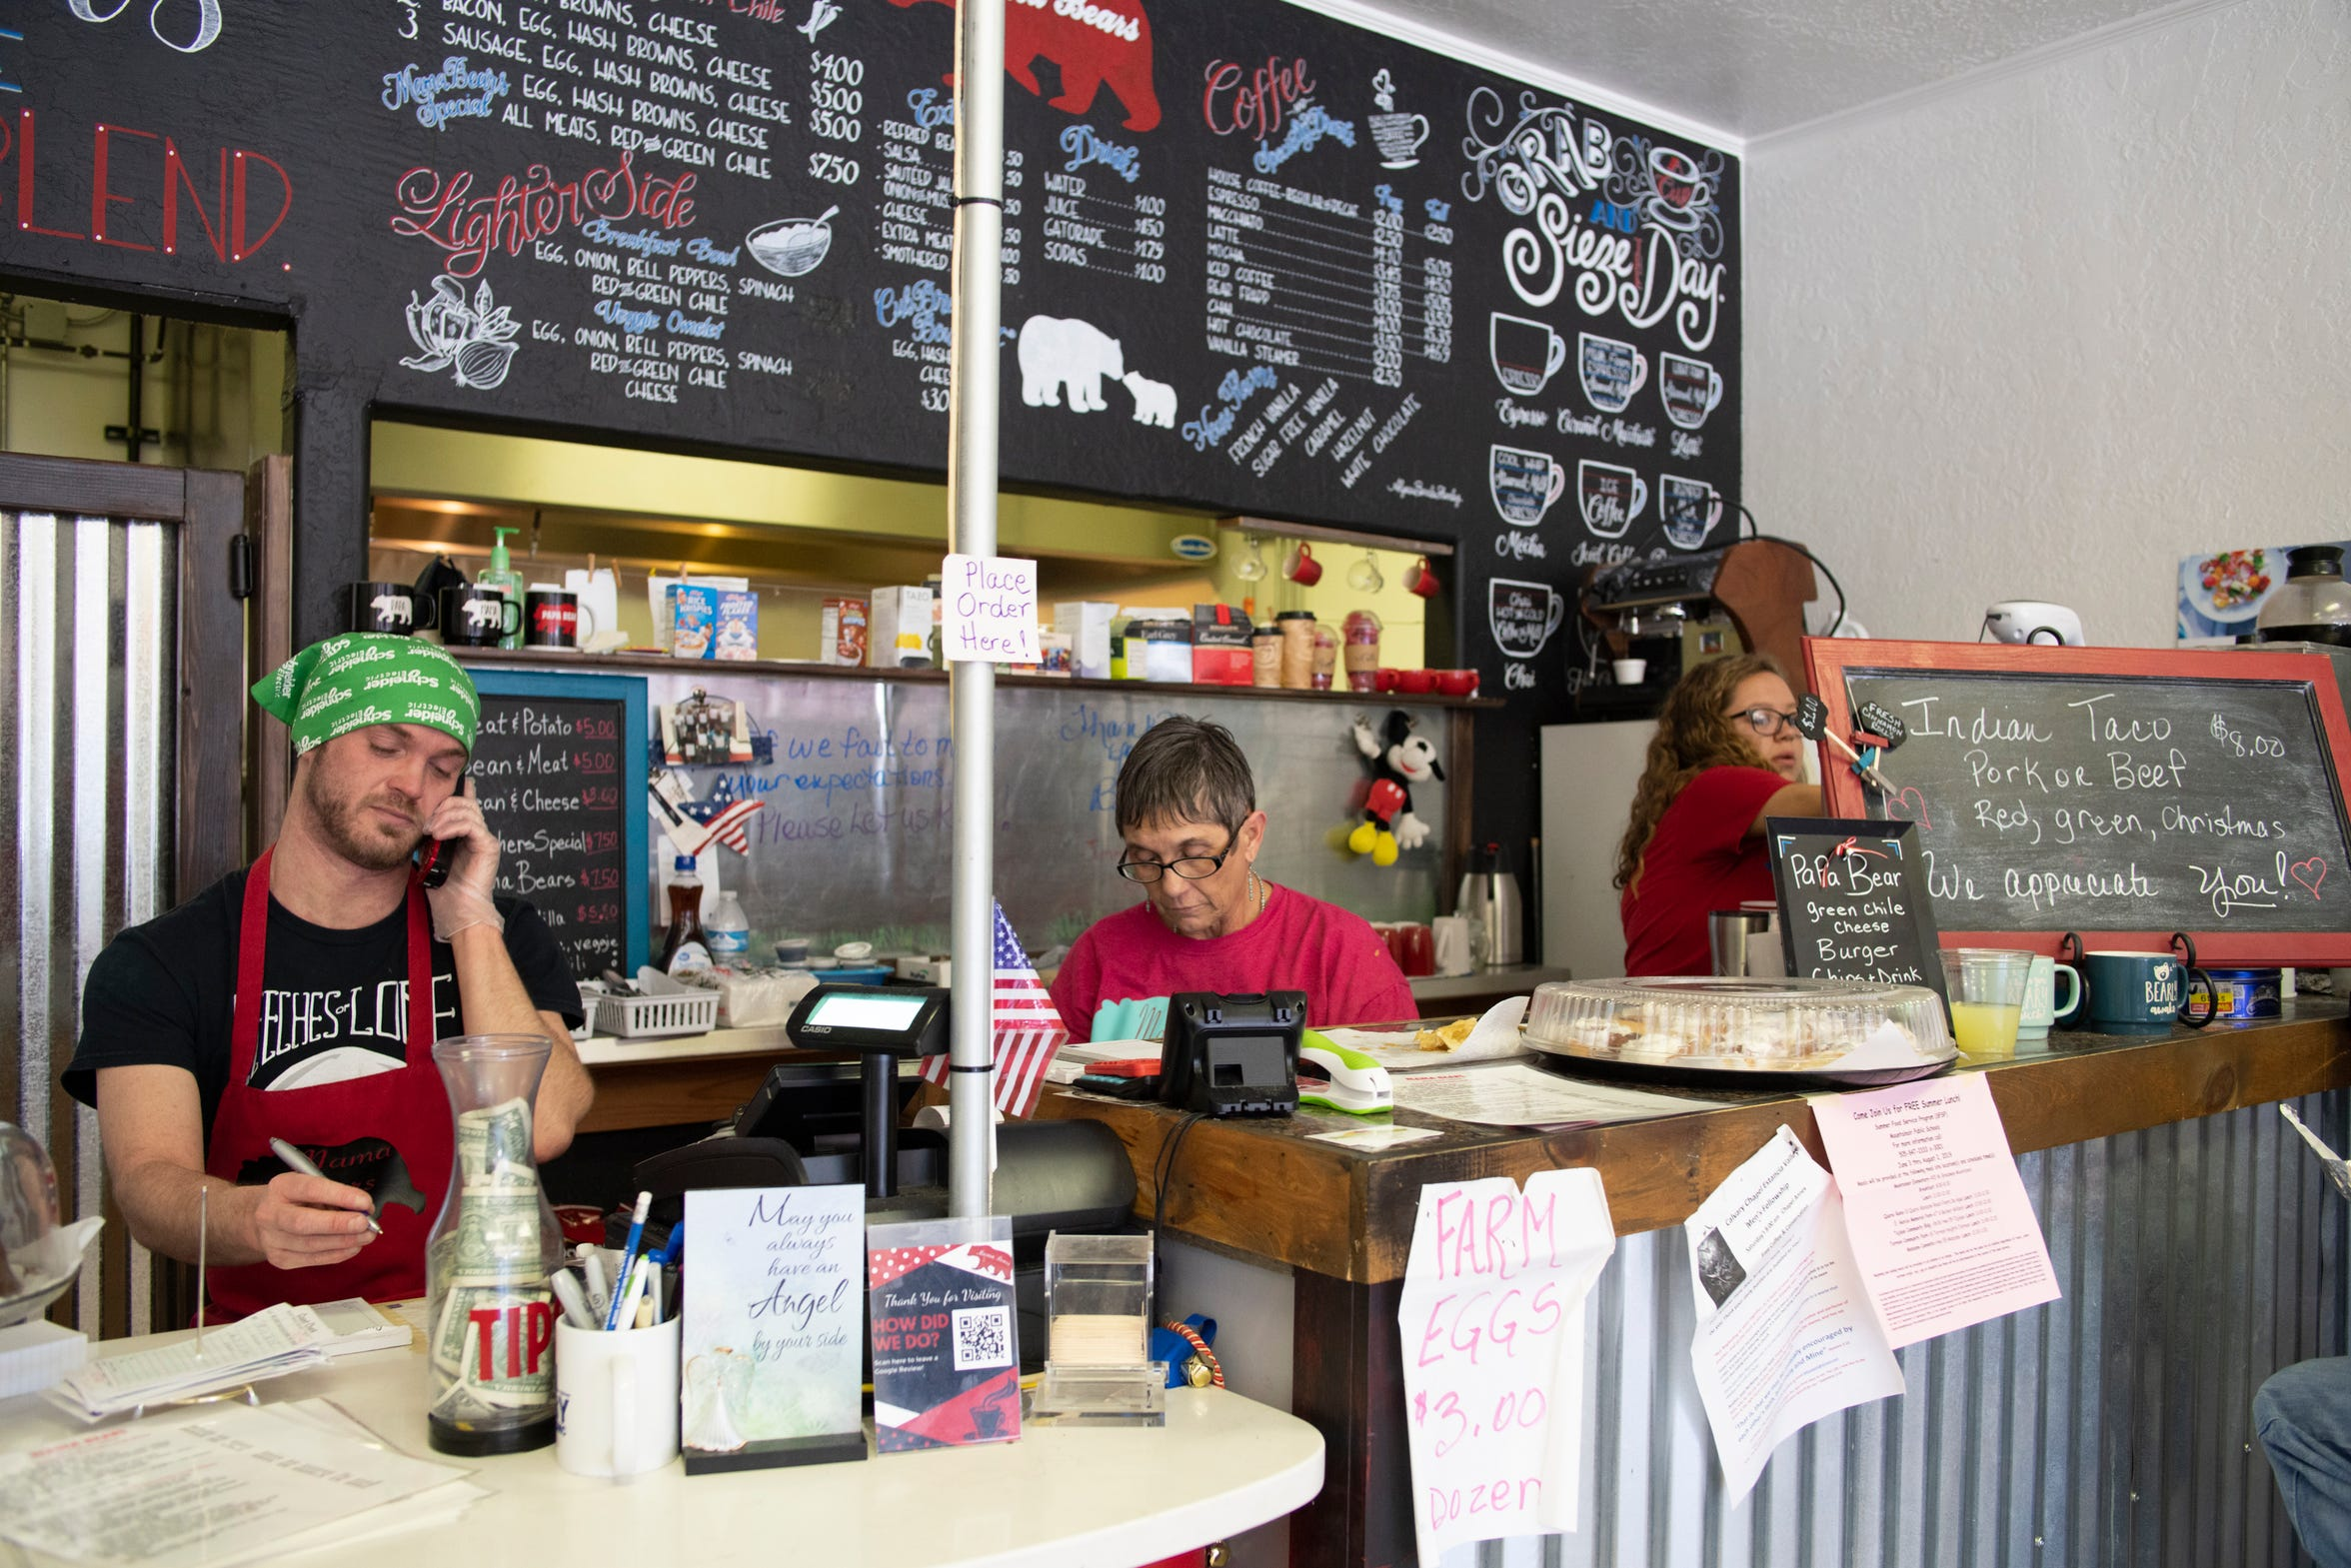 Kathy Swope and workers behind the counter in Mama Bears Café in Estancia.